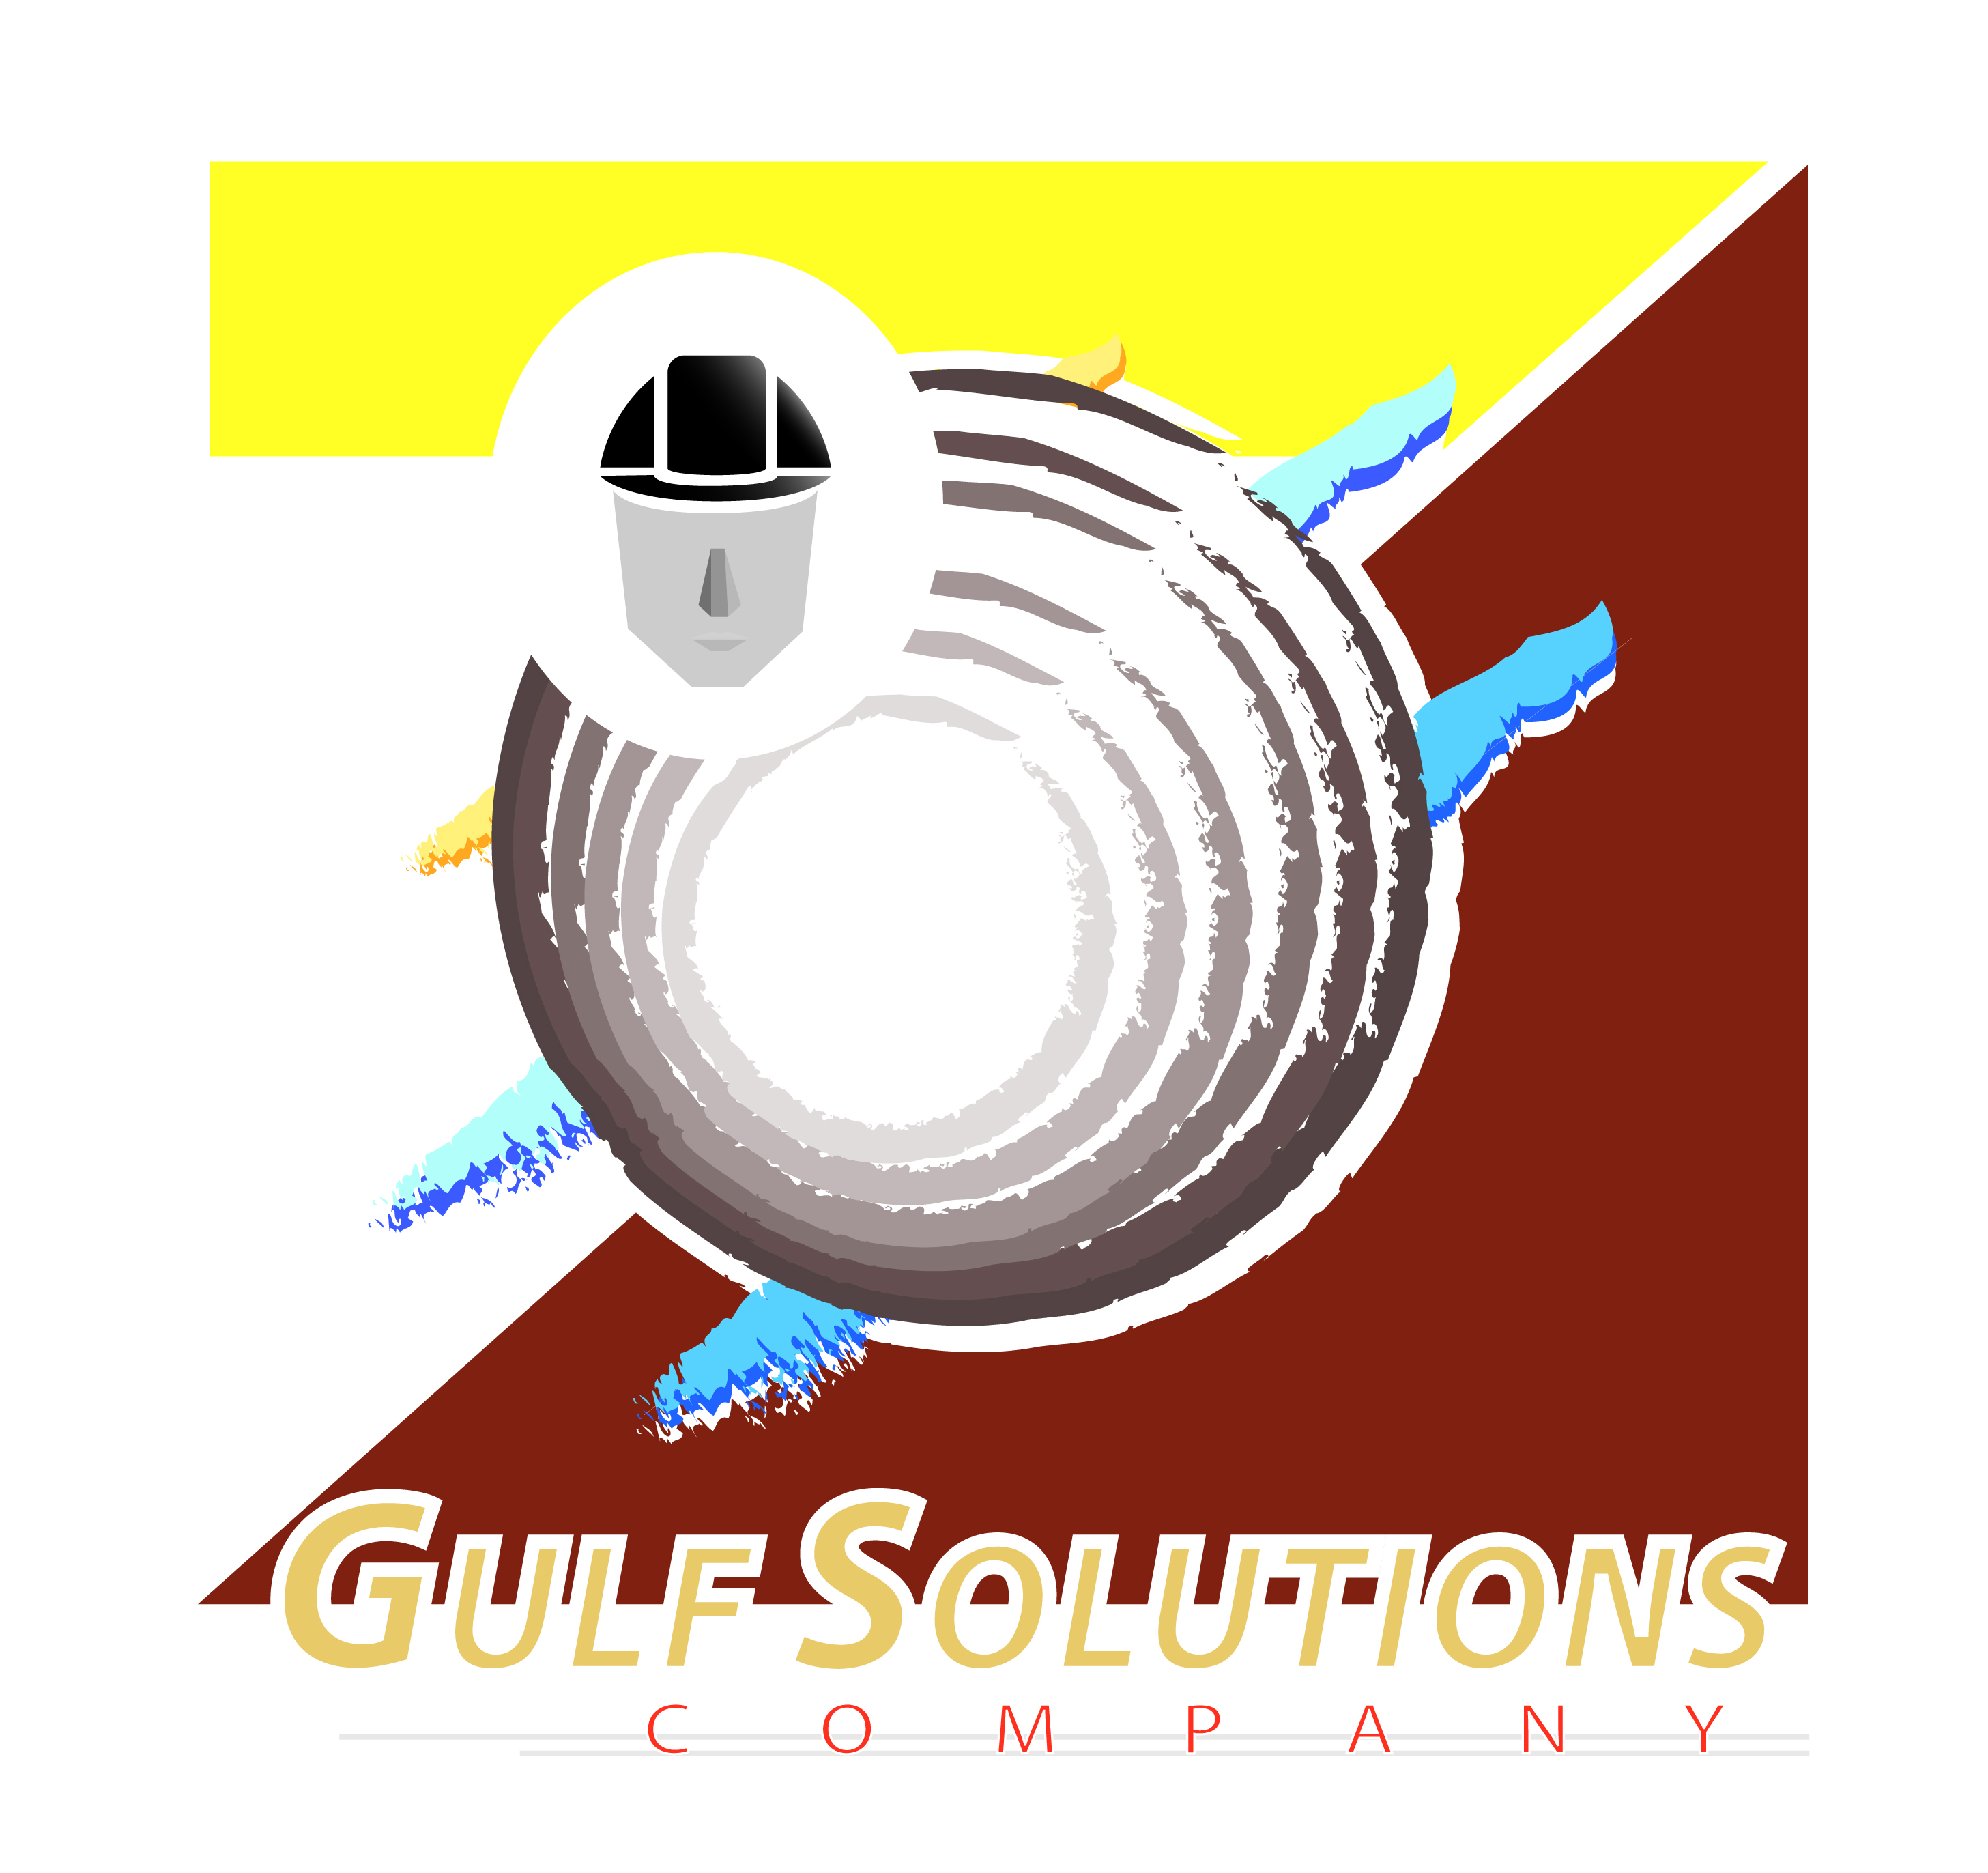 Logo Design by Piyush Sharma - Entry No. 12 in the Logo Design Contest New Logo Design for Gulf solutions company.